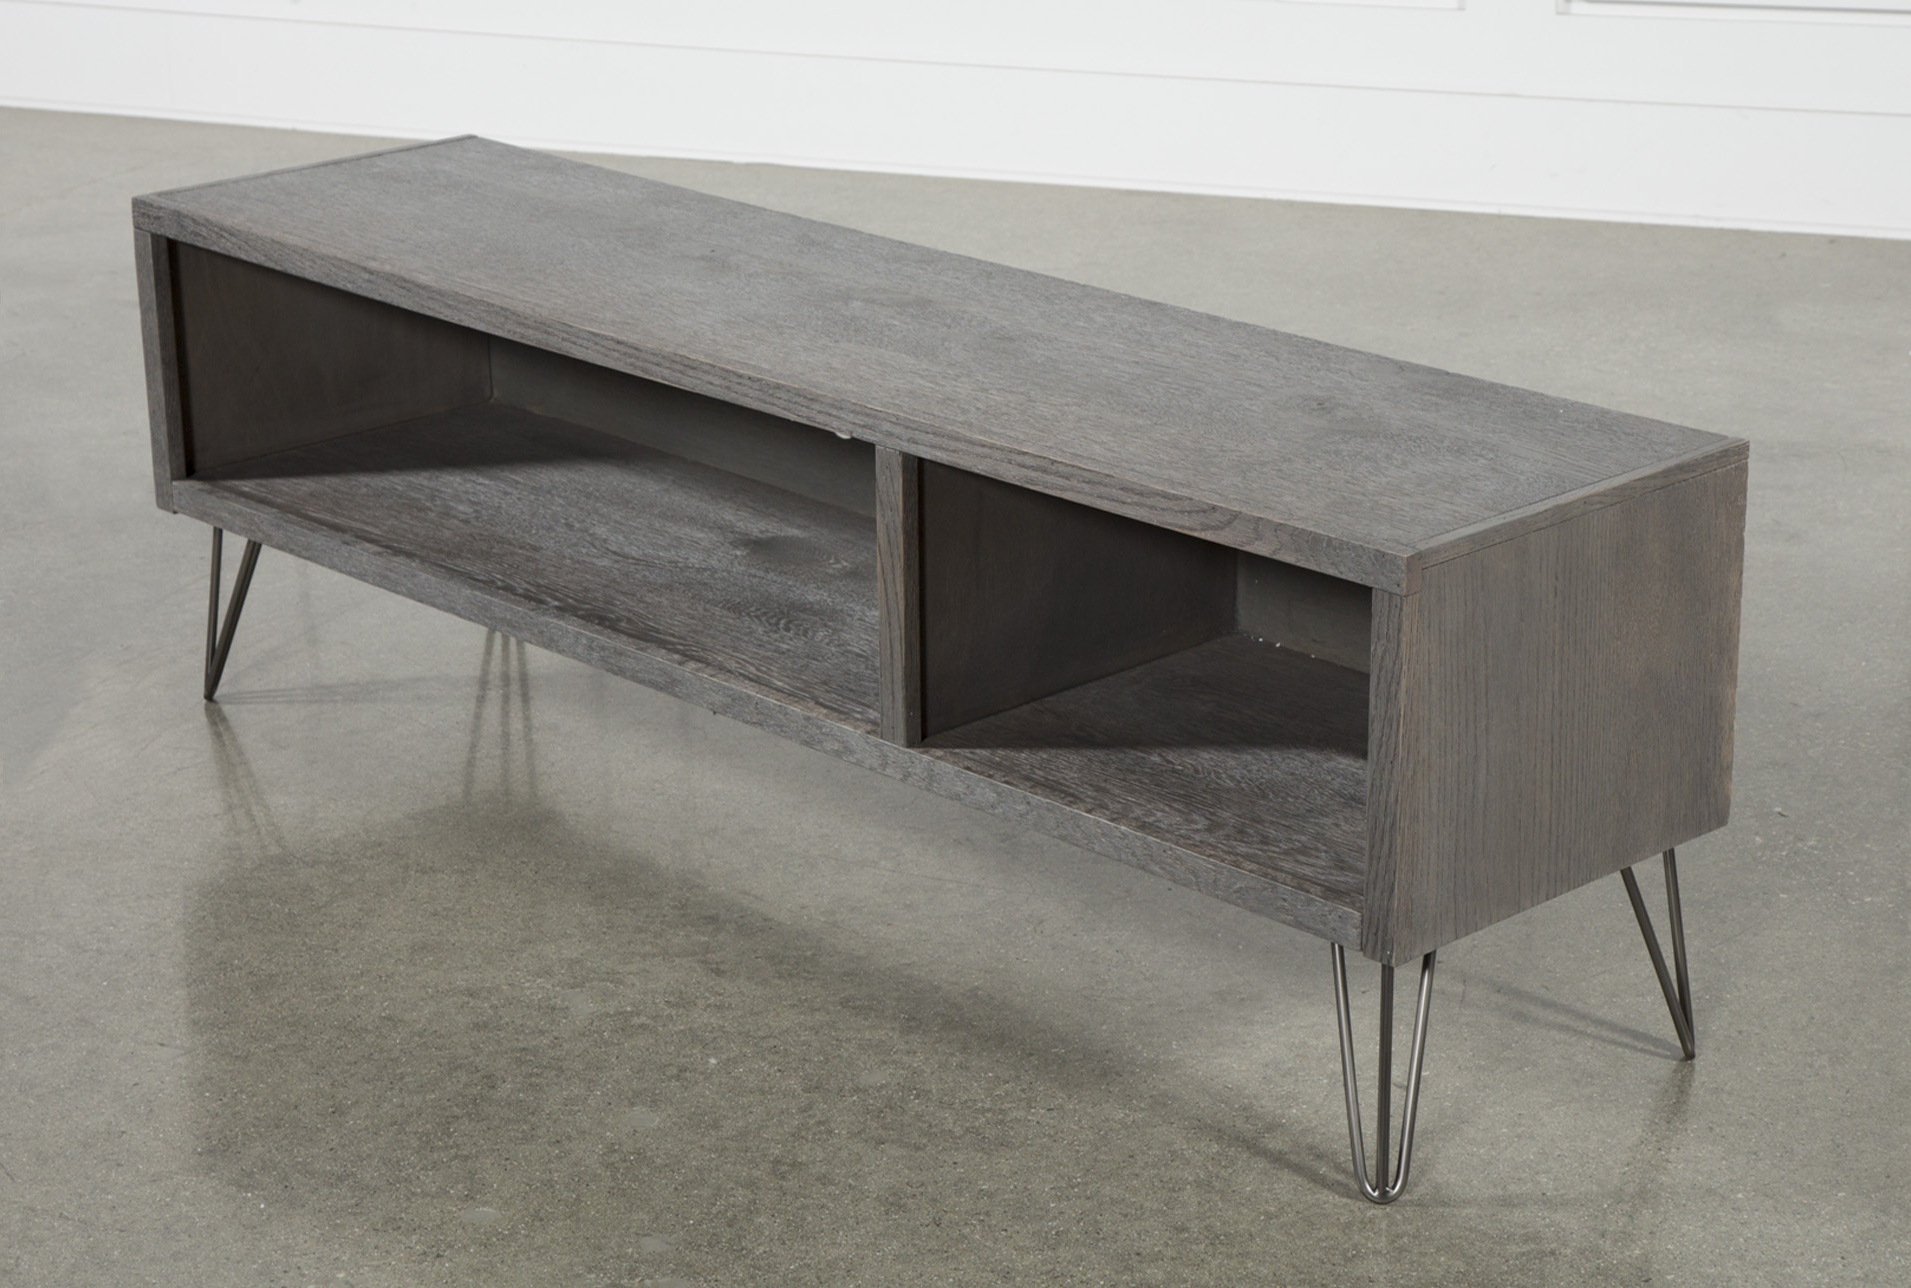 Melrose Titanium 65 Inch Lowboy Tv Stand | Products | Lowboy, Houzz Within Melrose Titanium 65 Inch Lowboy Tv Stands (View 10 of 18)